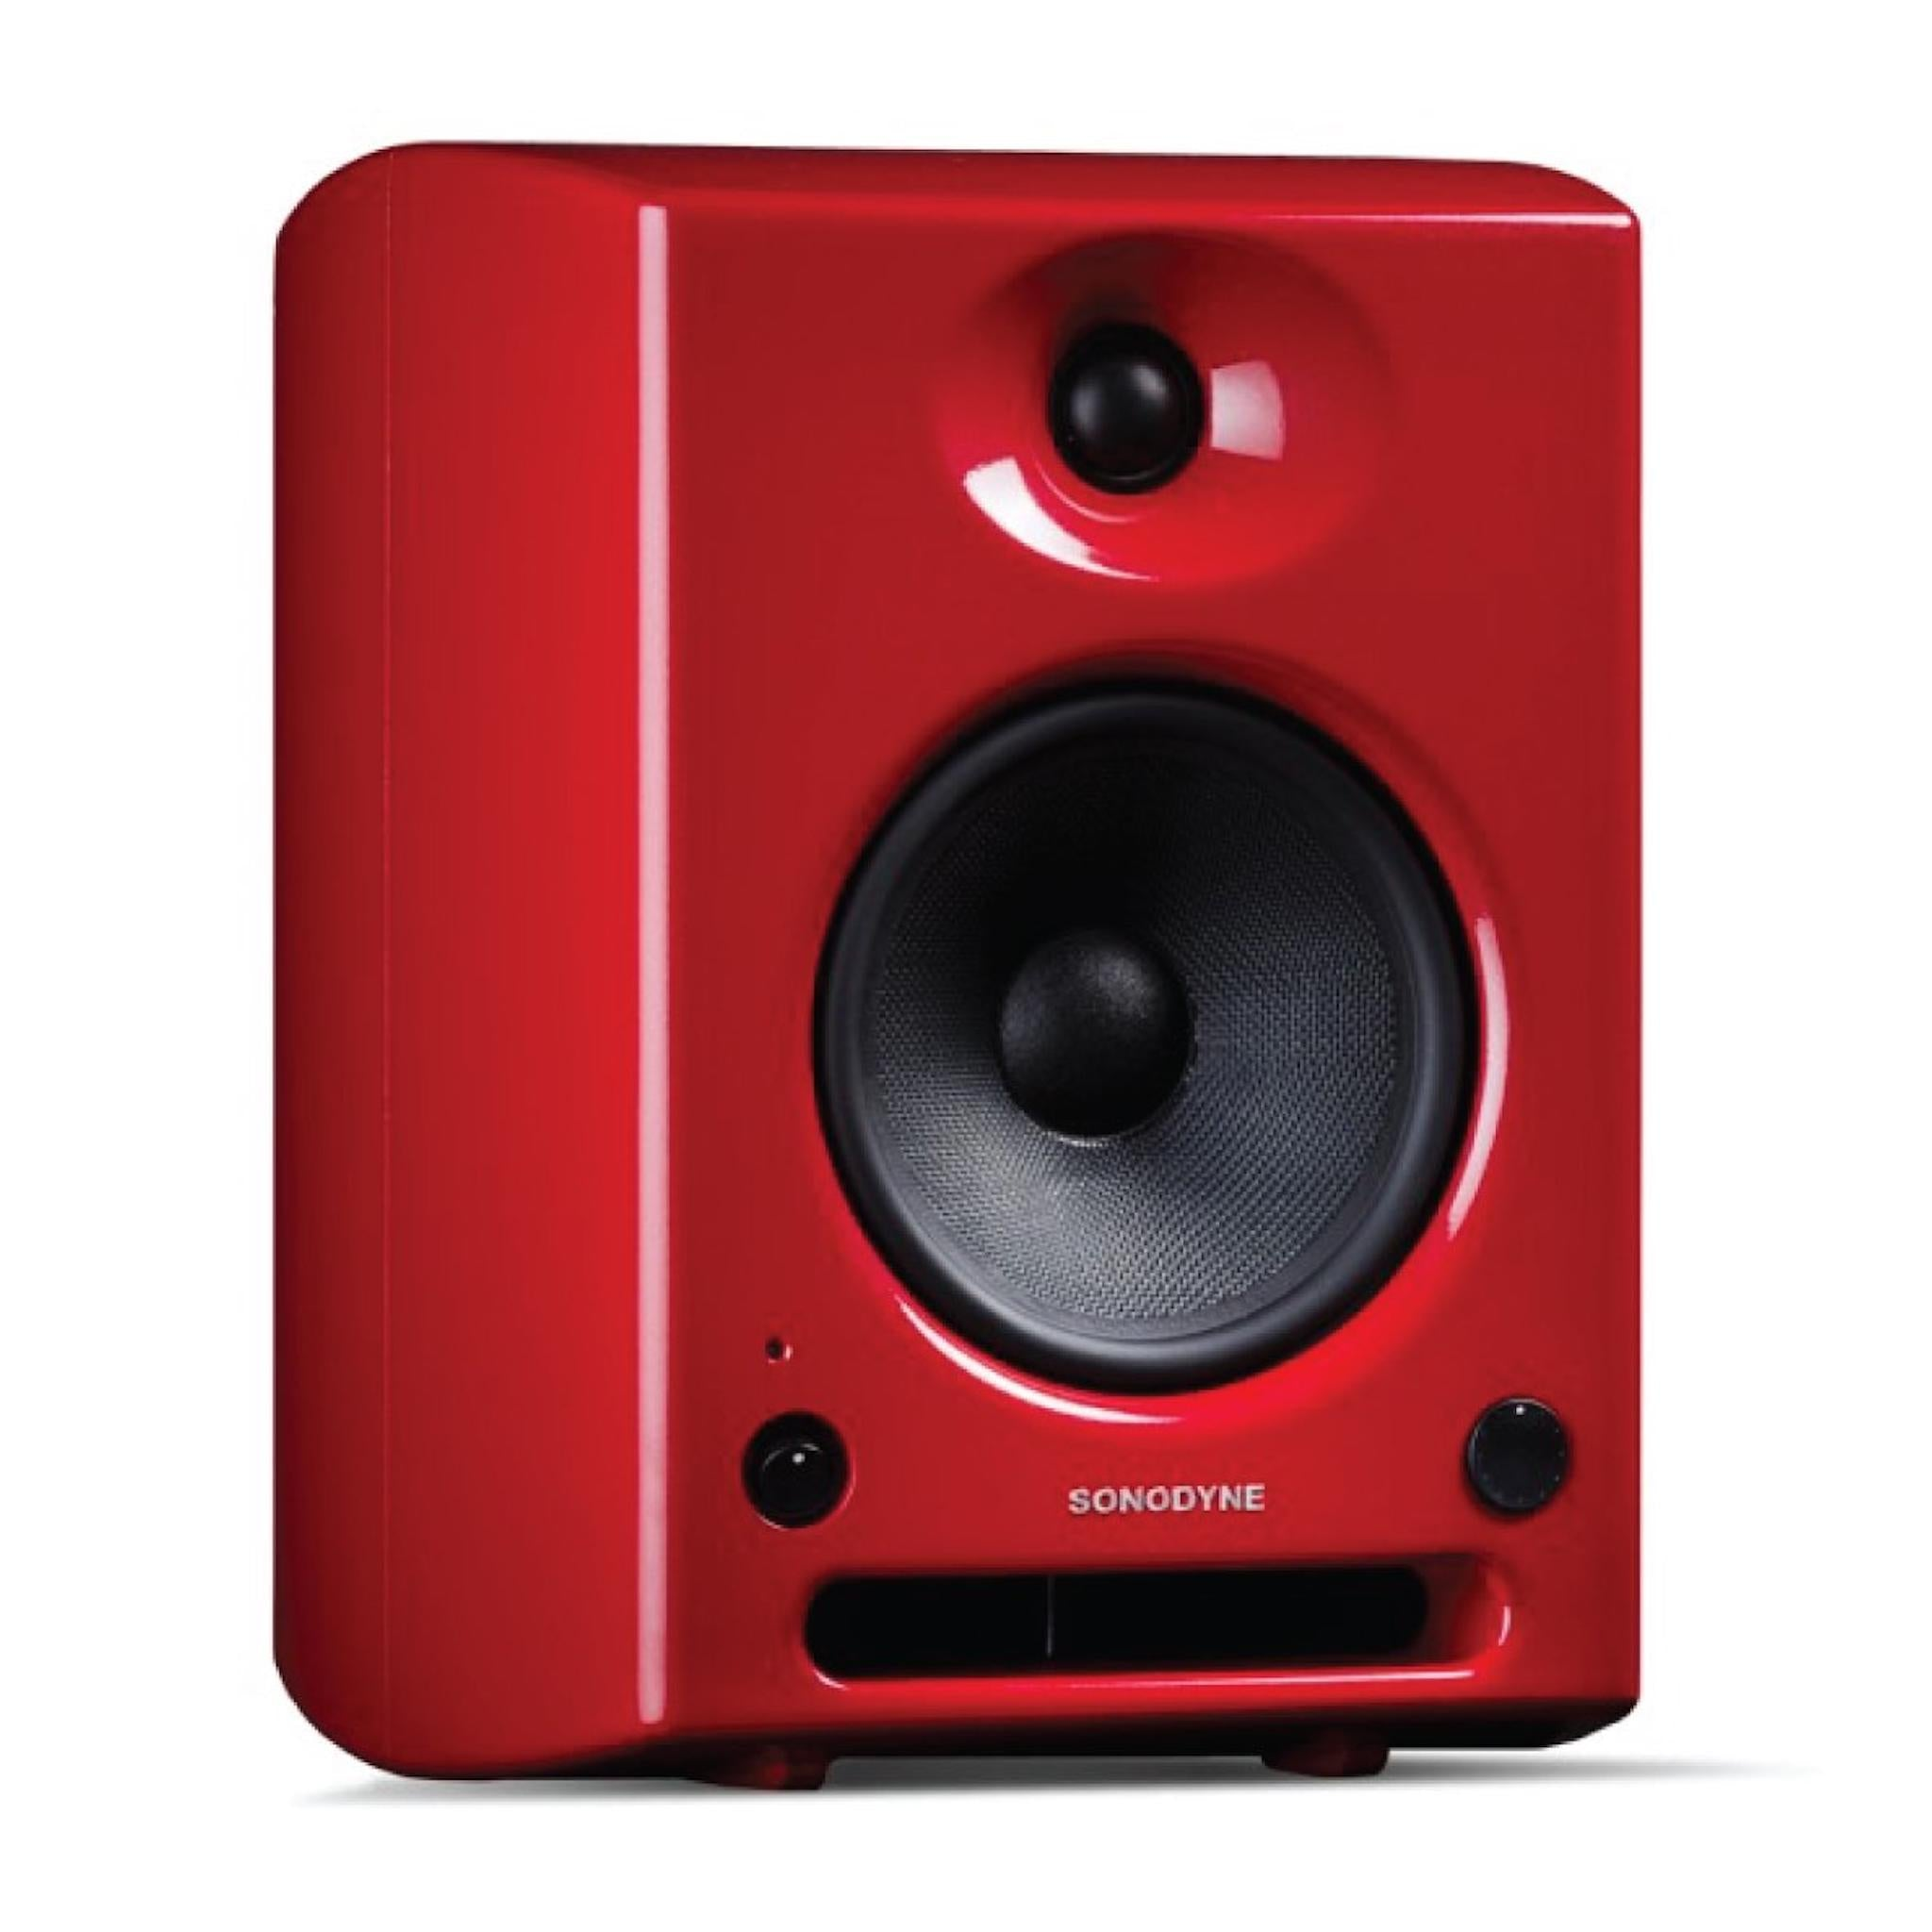 Sonodyne SRP 204 - Active Bookshelf Speaker - Pair, sonodyne, Active Bookshelf Speaker - AVStore.in